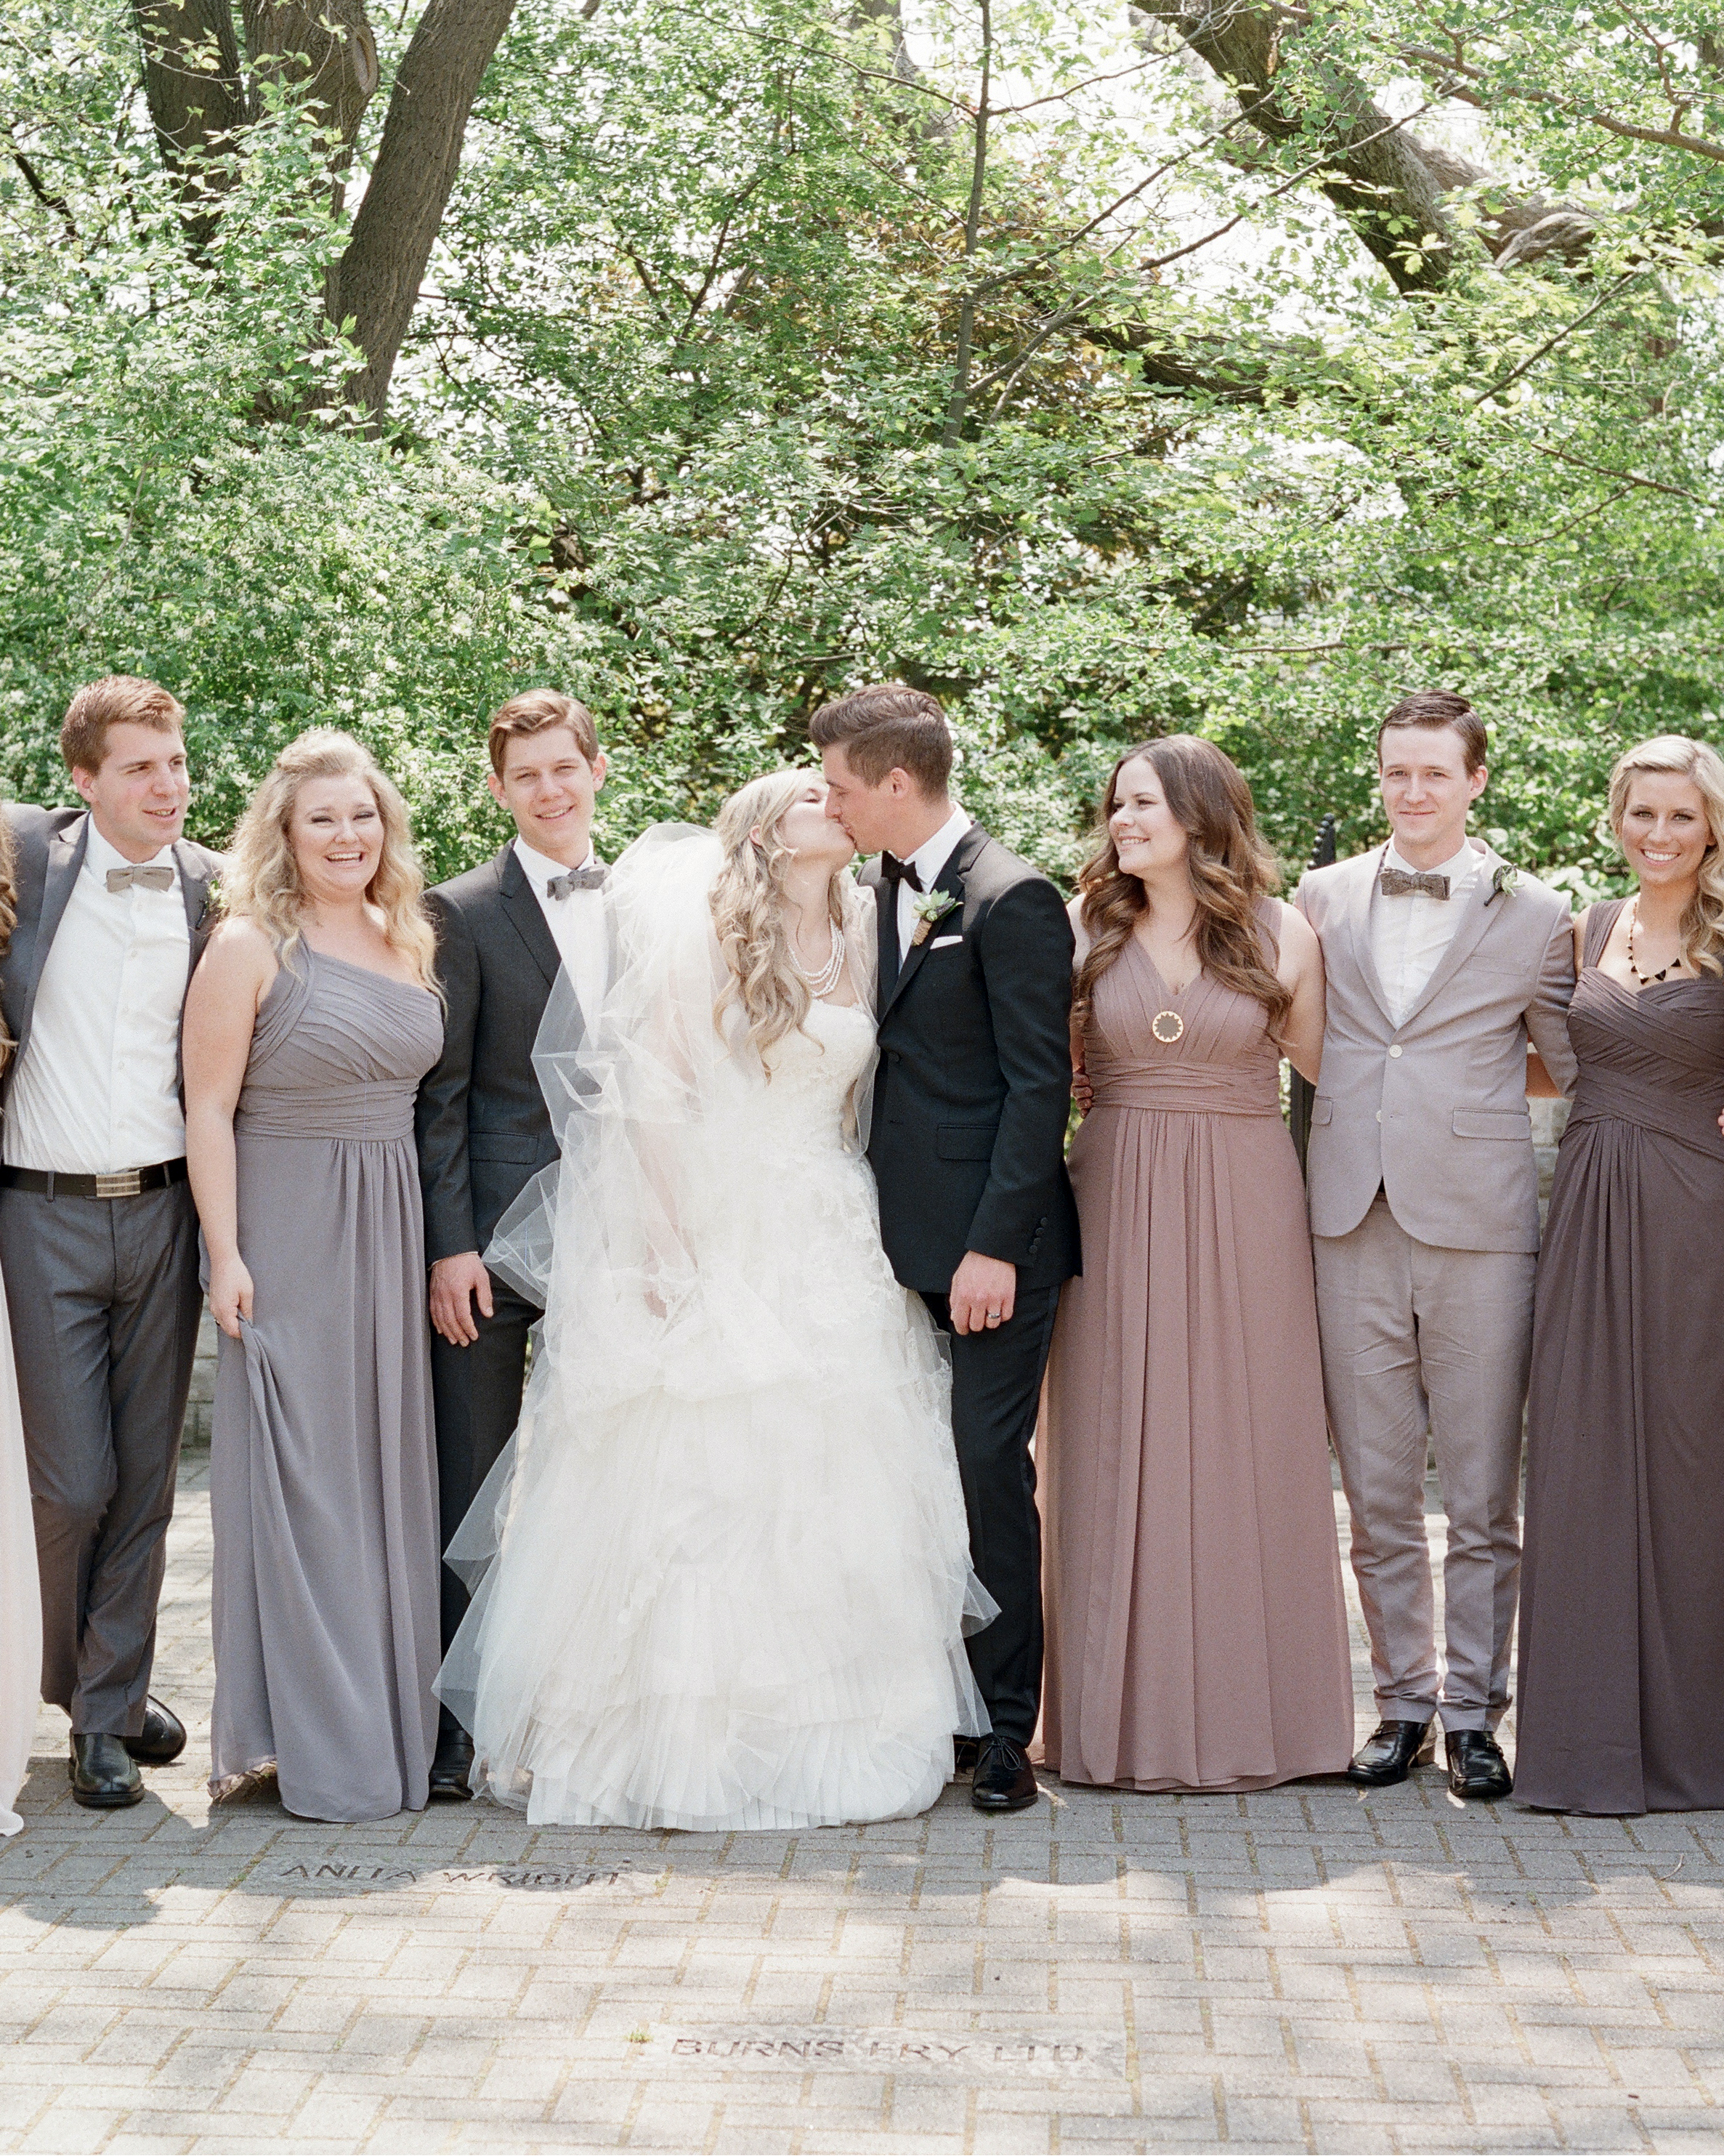 brittany-jeff-wedding-bridalparty-082-s111415-0714.jpg